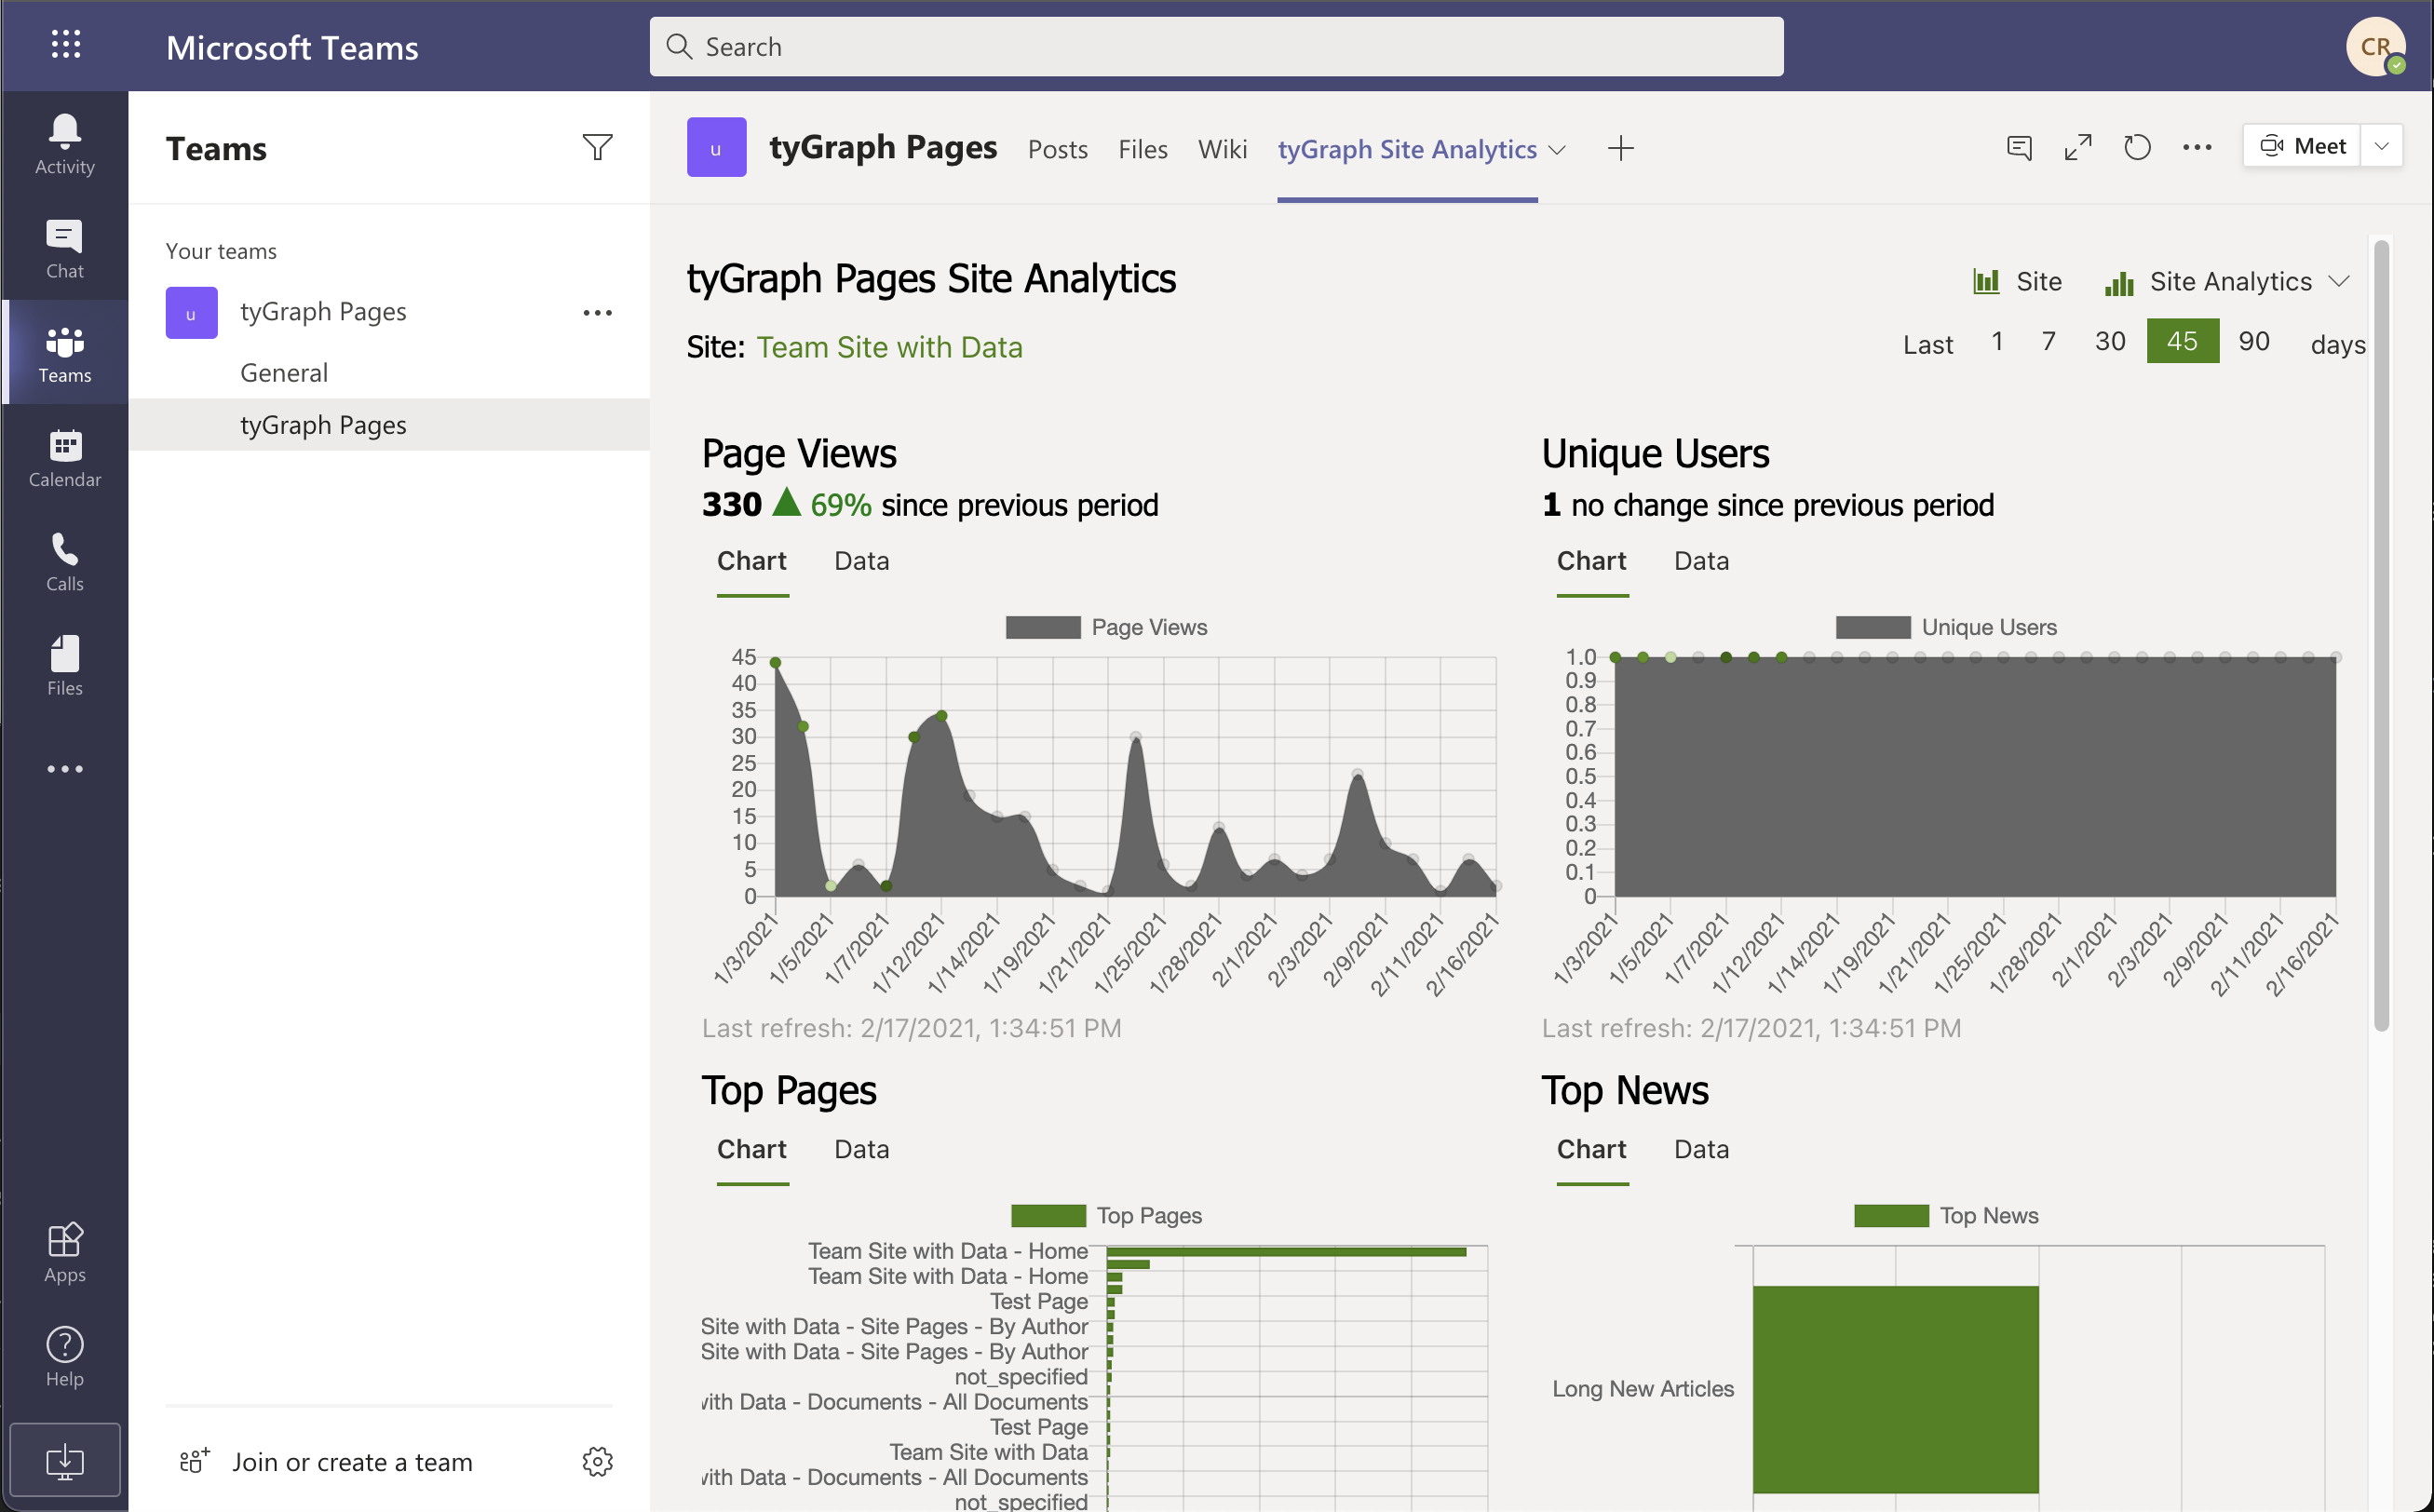 tyGraph Pages shown in a Microsoft Teams Tab